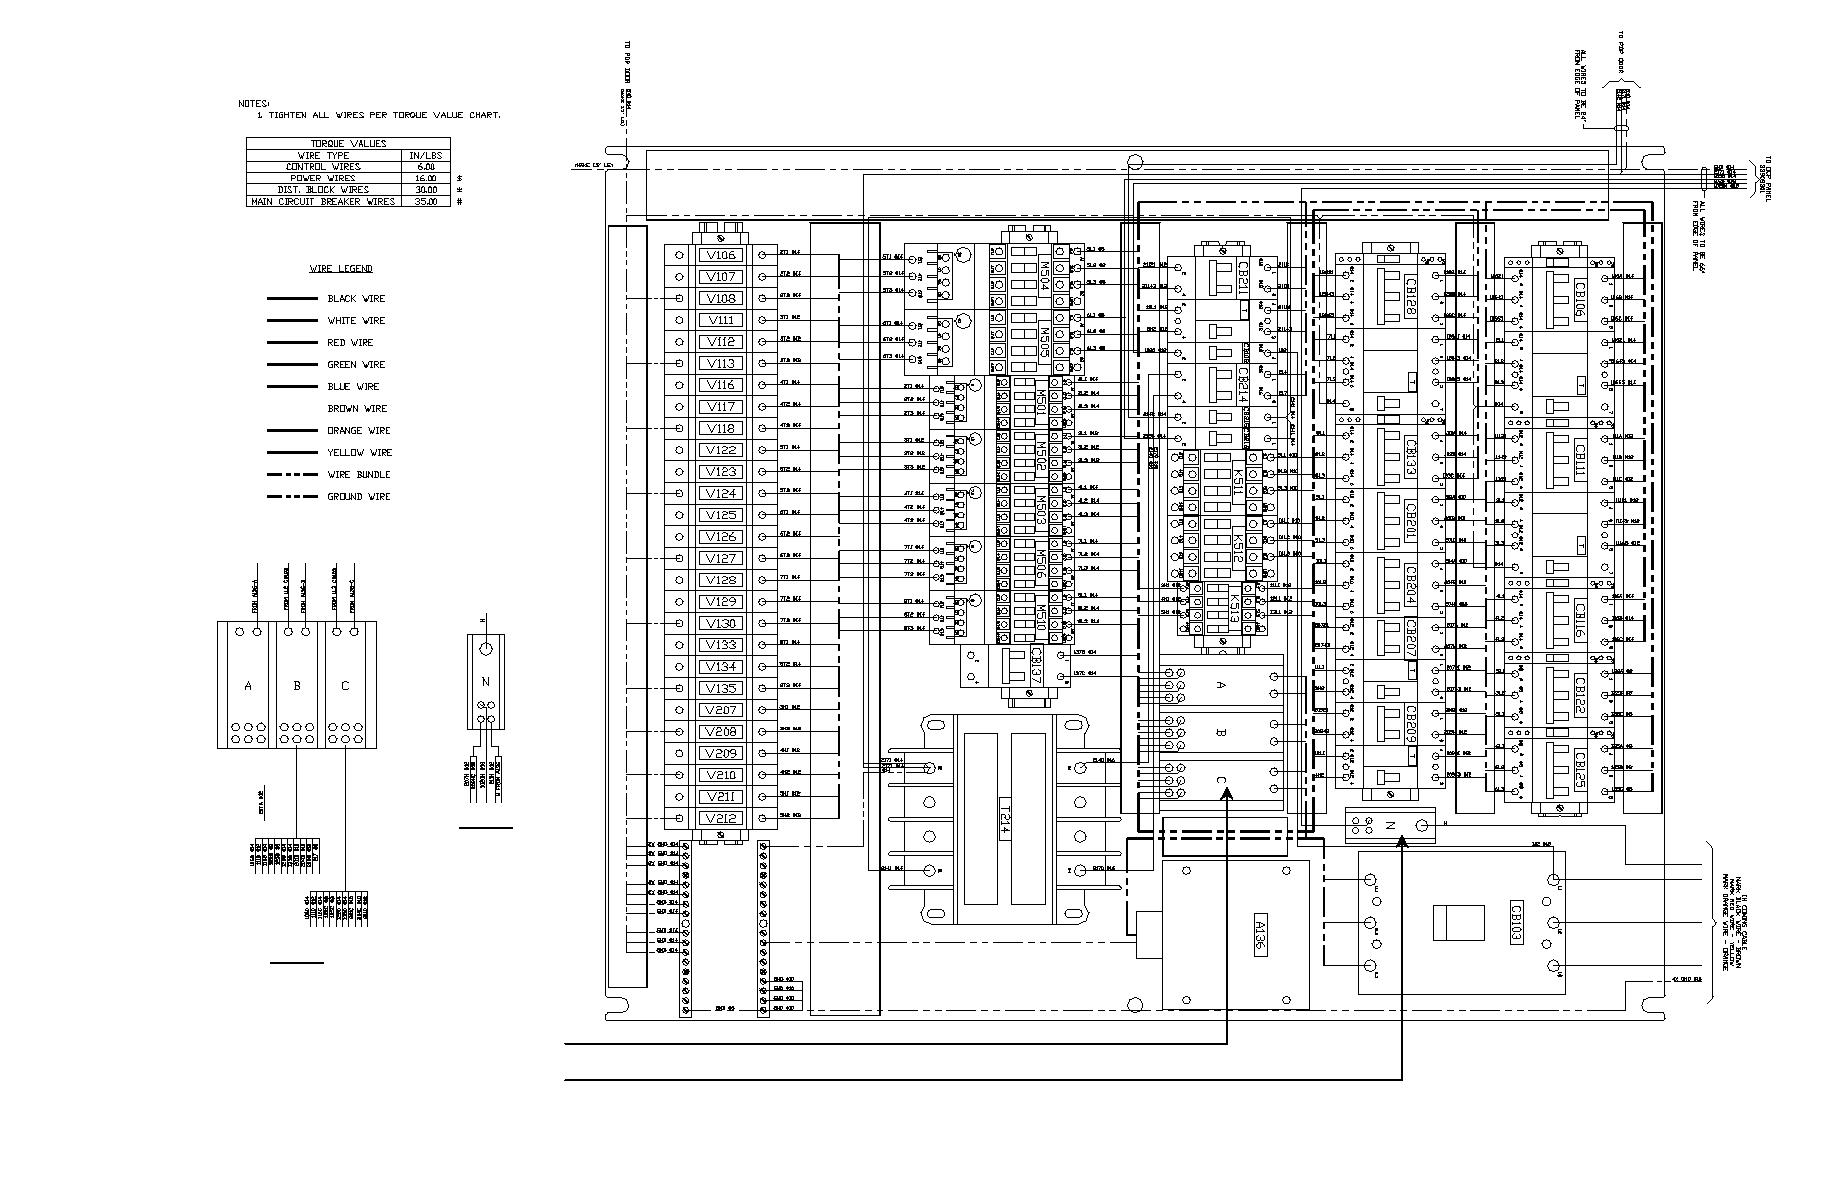 TM 10 4610 309 141417im figure 4 twps point to point wiring diagrams pdp sub panel power point to point wiring diagram at n-0.co